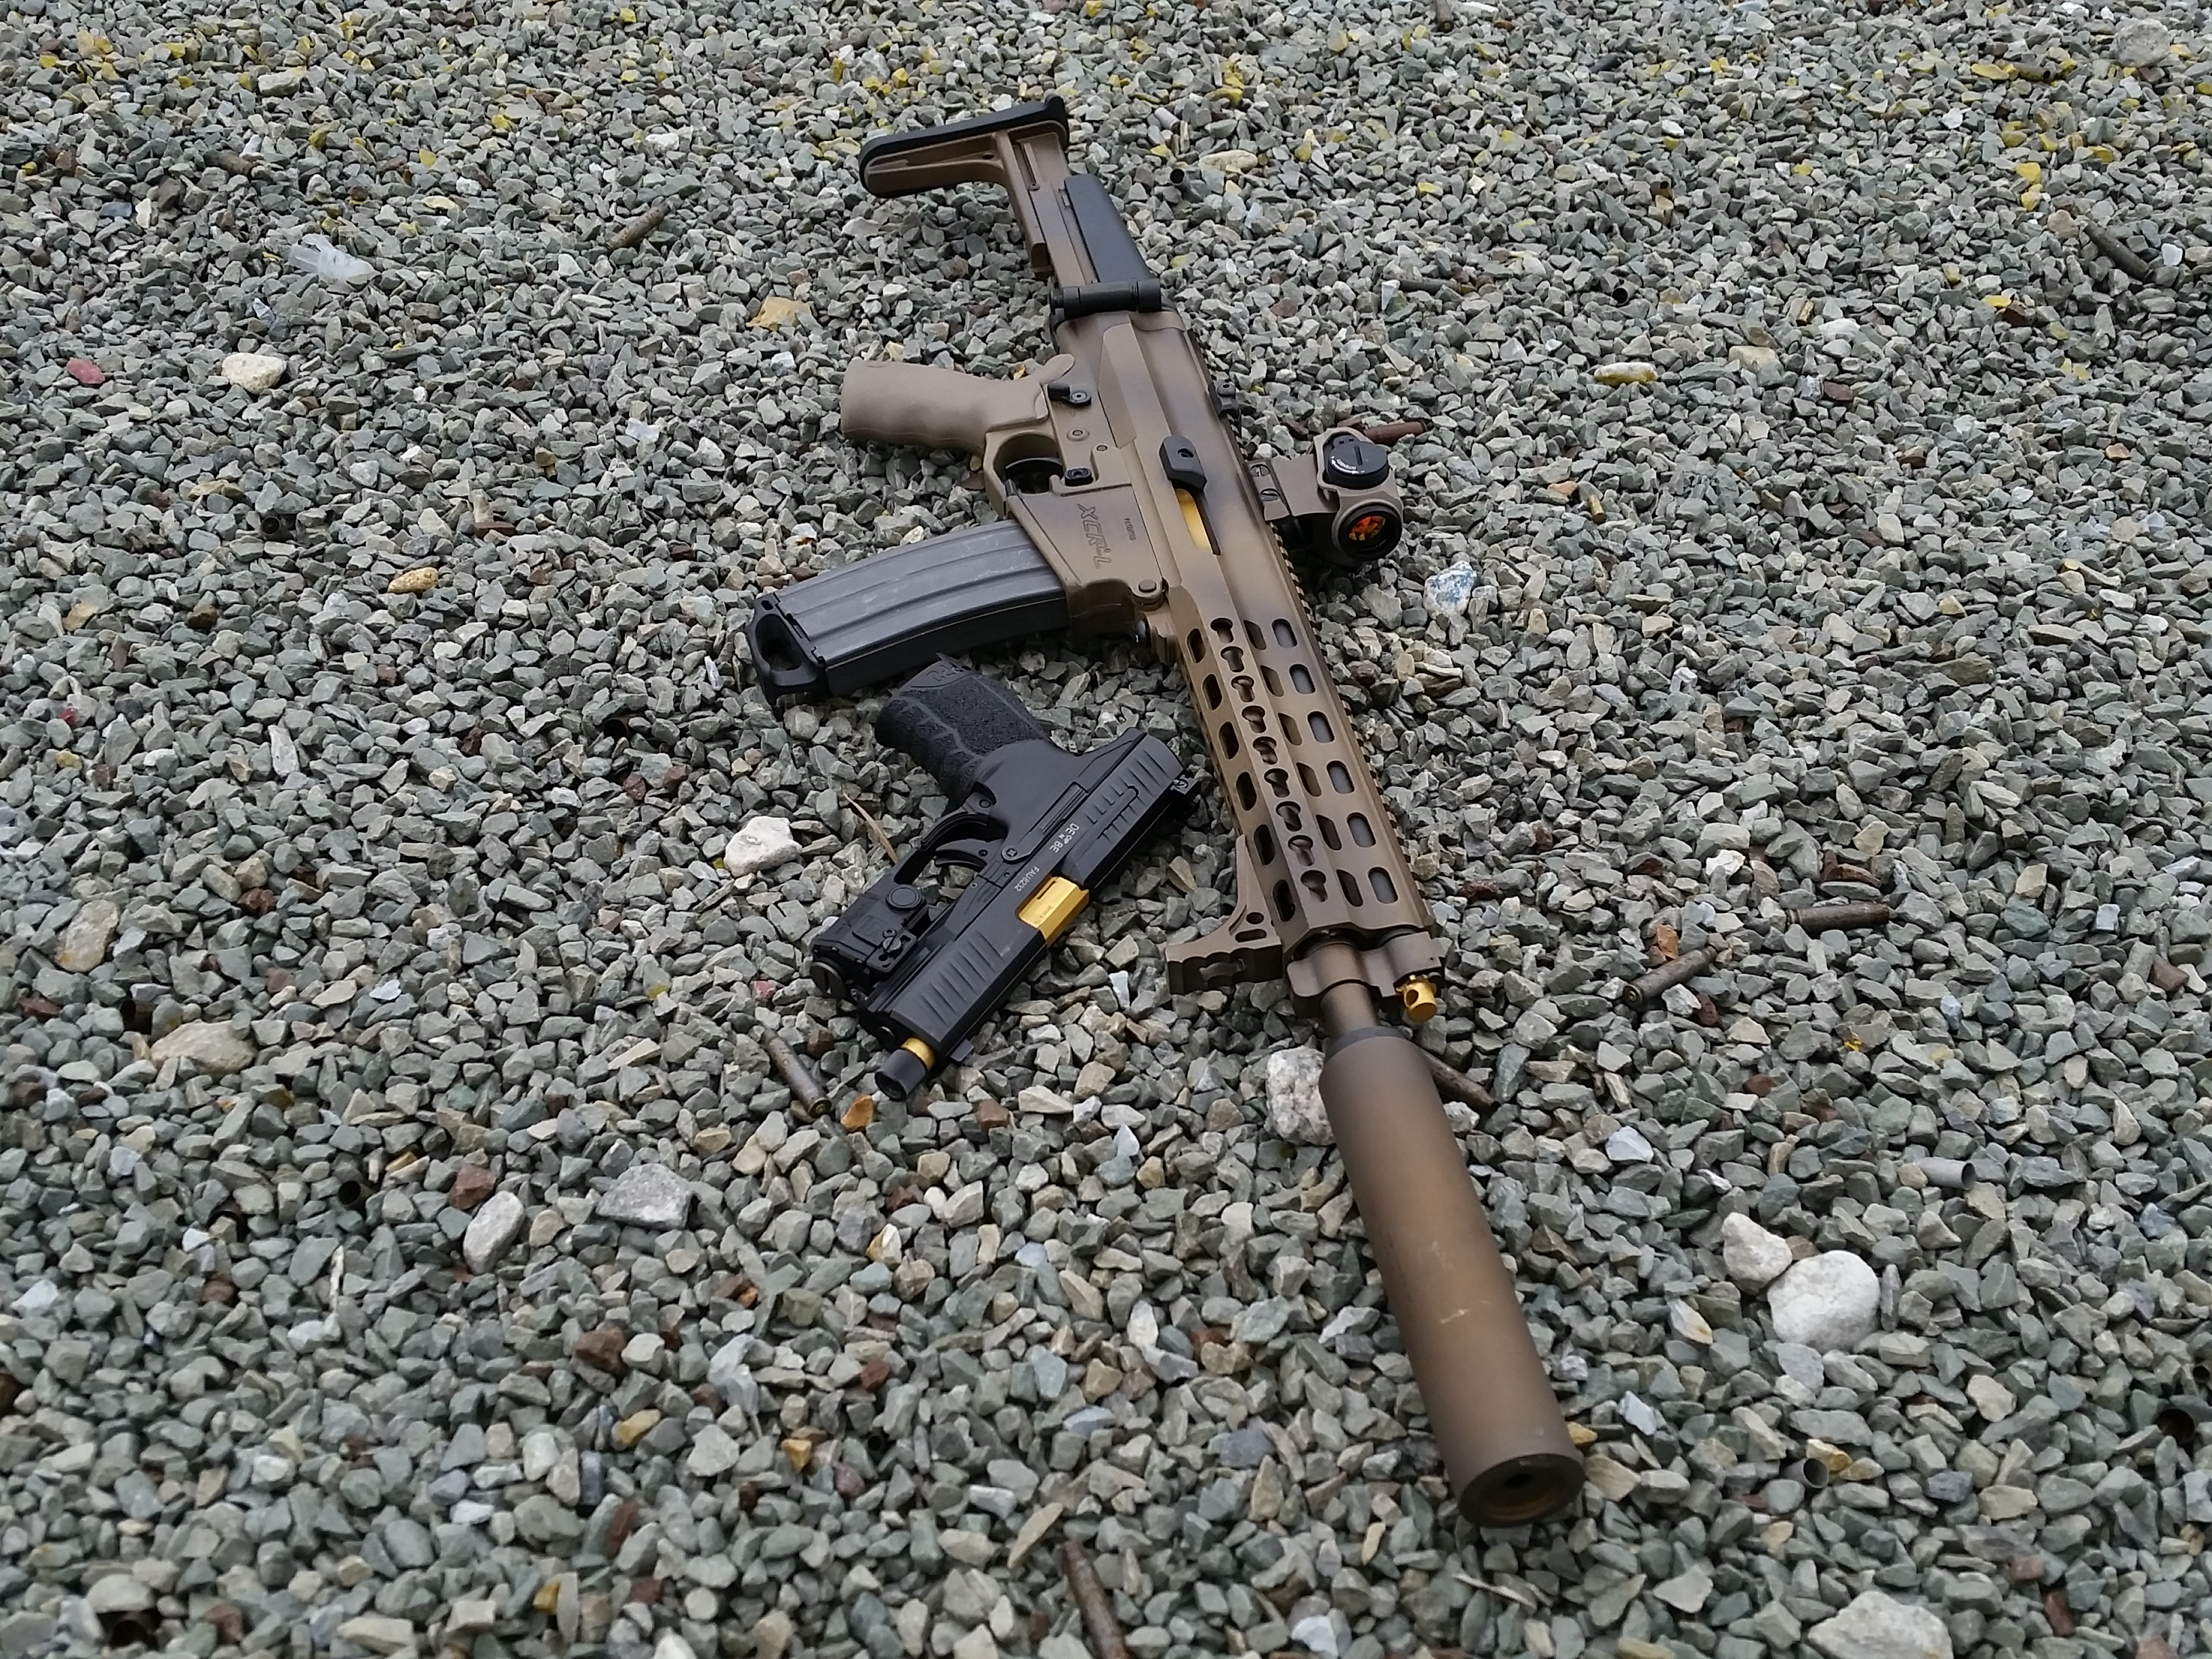 XCR SBR Suppressed-20141123_133234.jpg